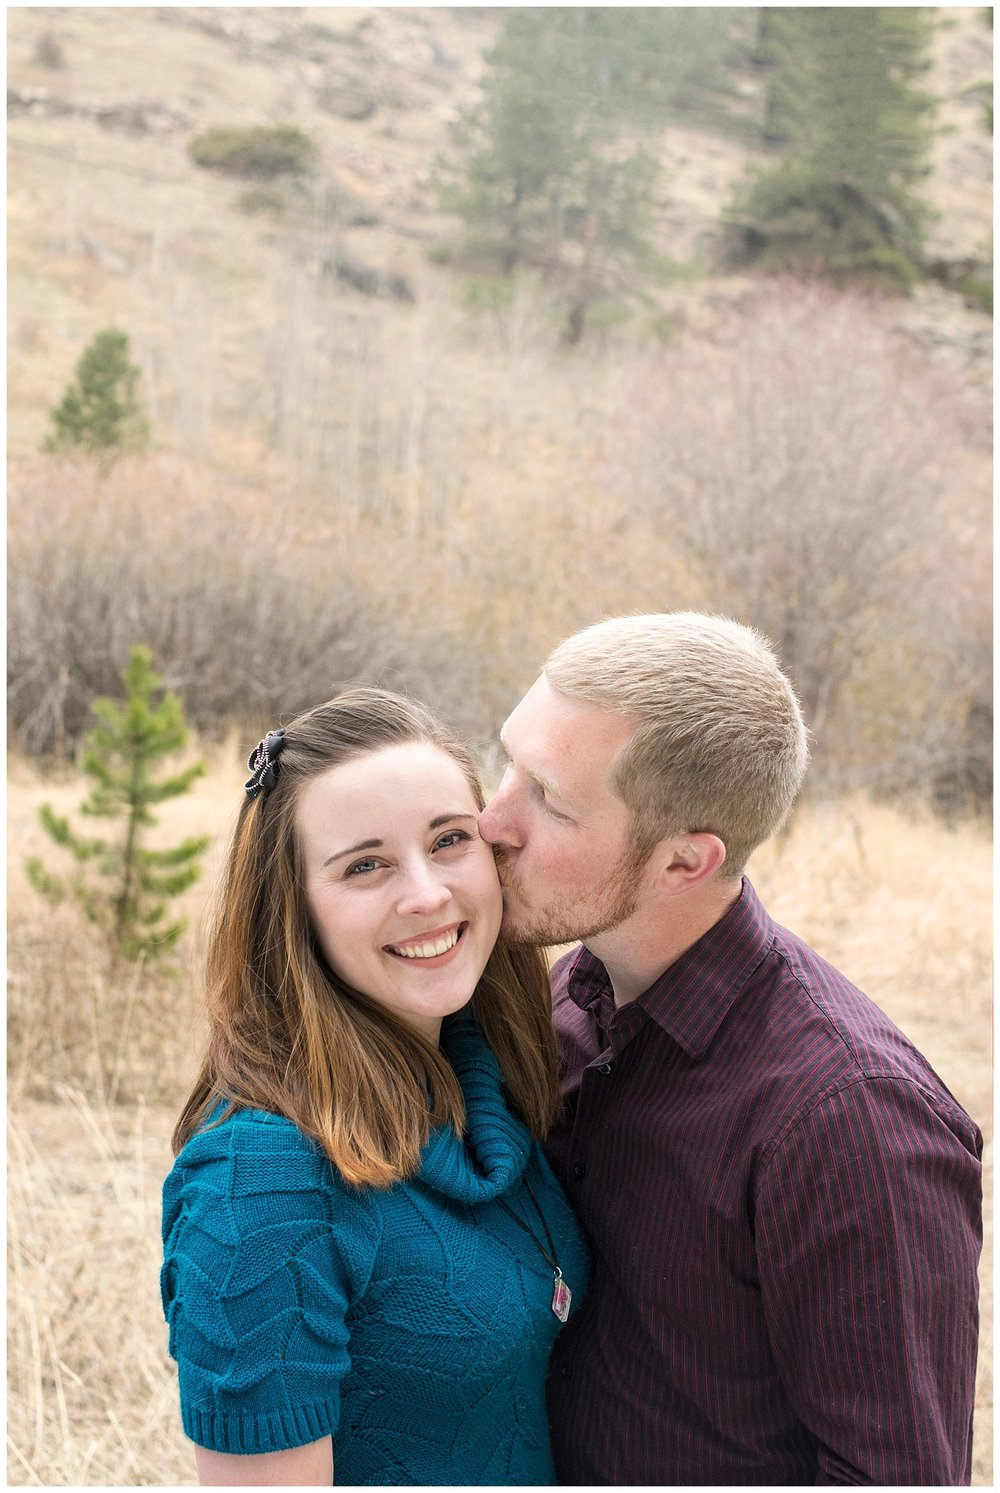 Man Kissing Woman | Mountain Engagement Photography | Golden Colorado Wedding Photographer | Farm Wedding Photographer | Apollo Fields Wedding Photojournalism